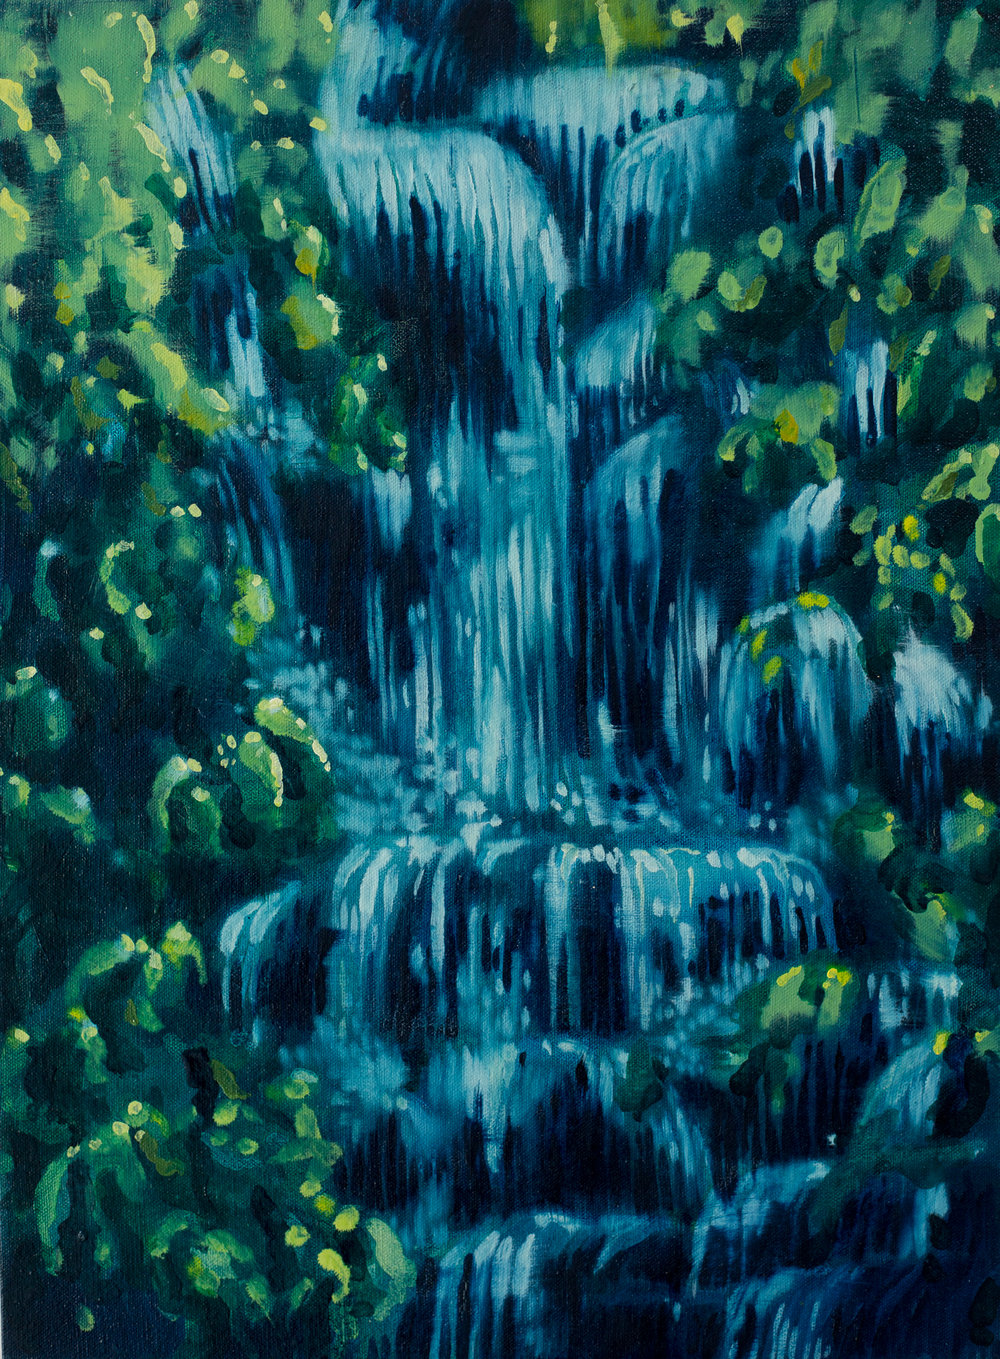 ' Where the River Still Runs' , Leila Walter, Oil on Canvas, 400 x 540 x 40 mm, R 4340.00 excl. vat.